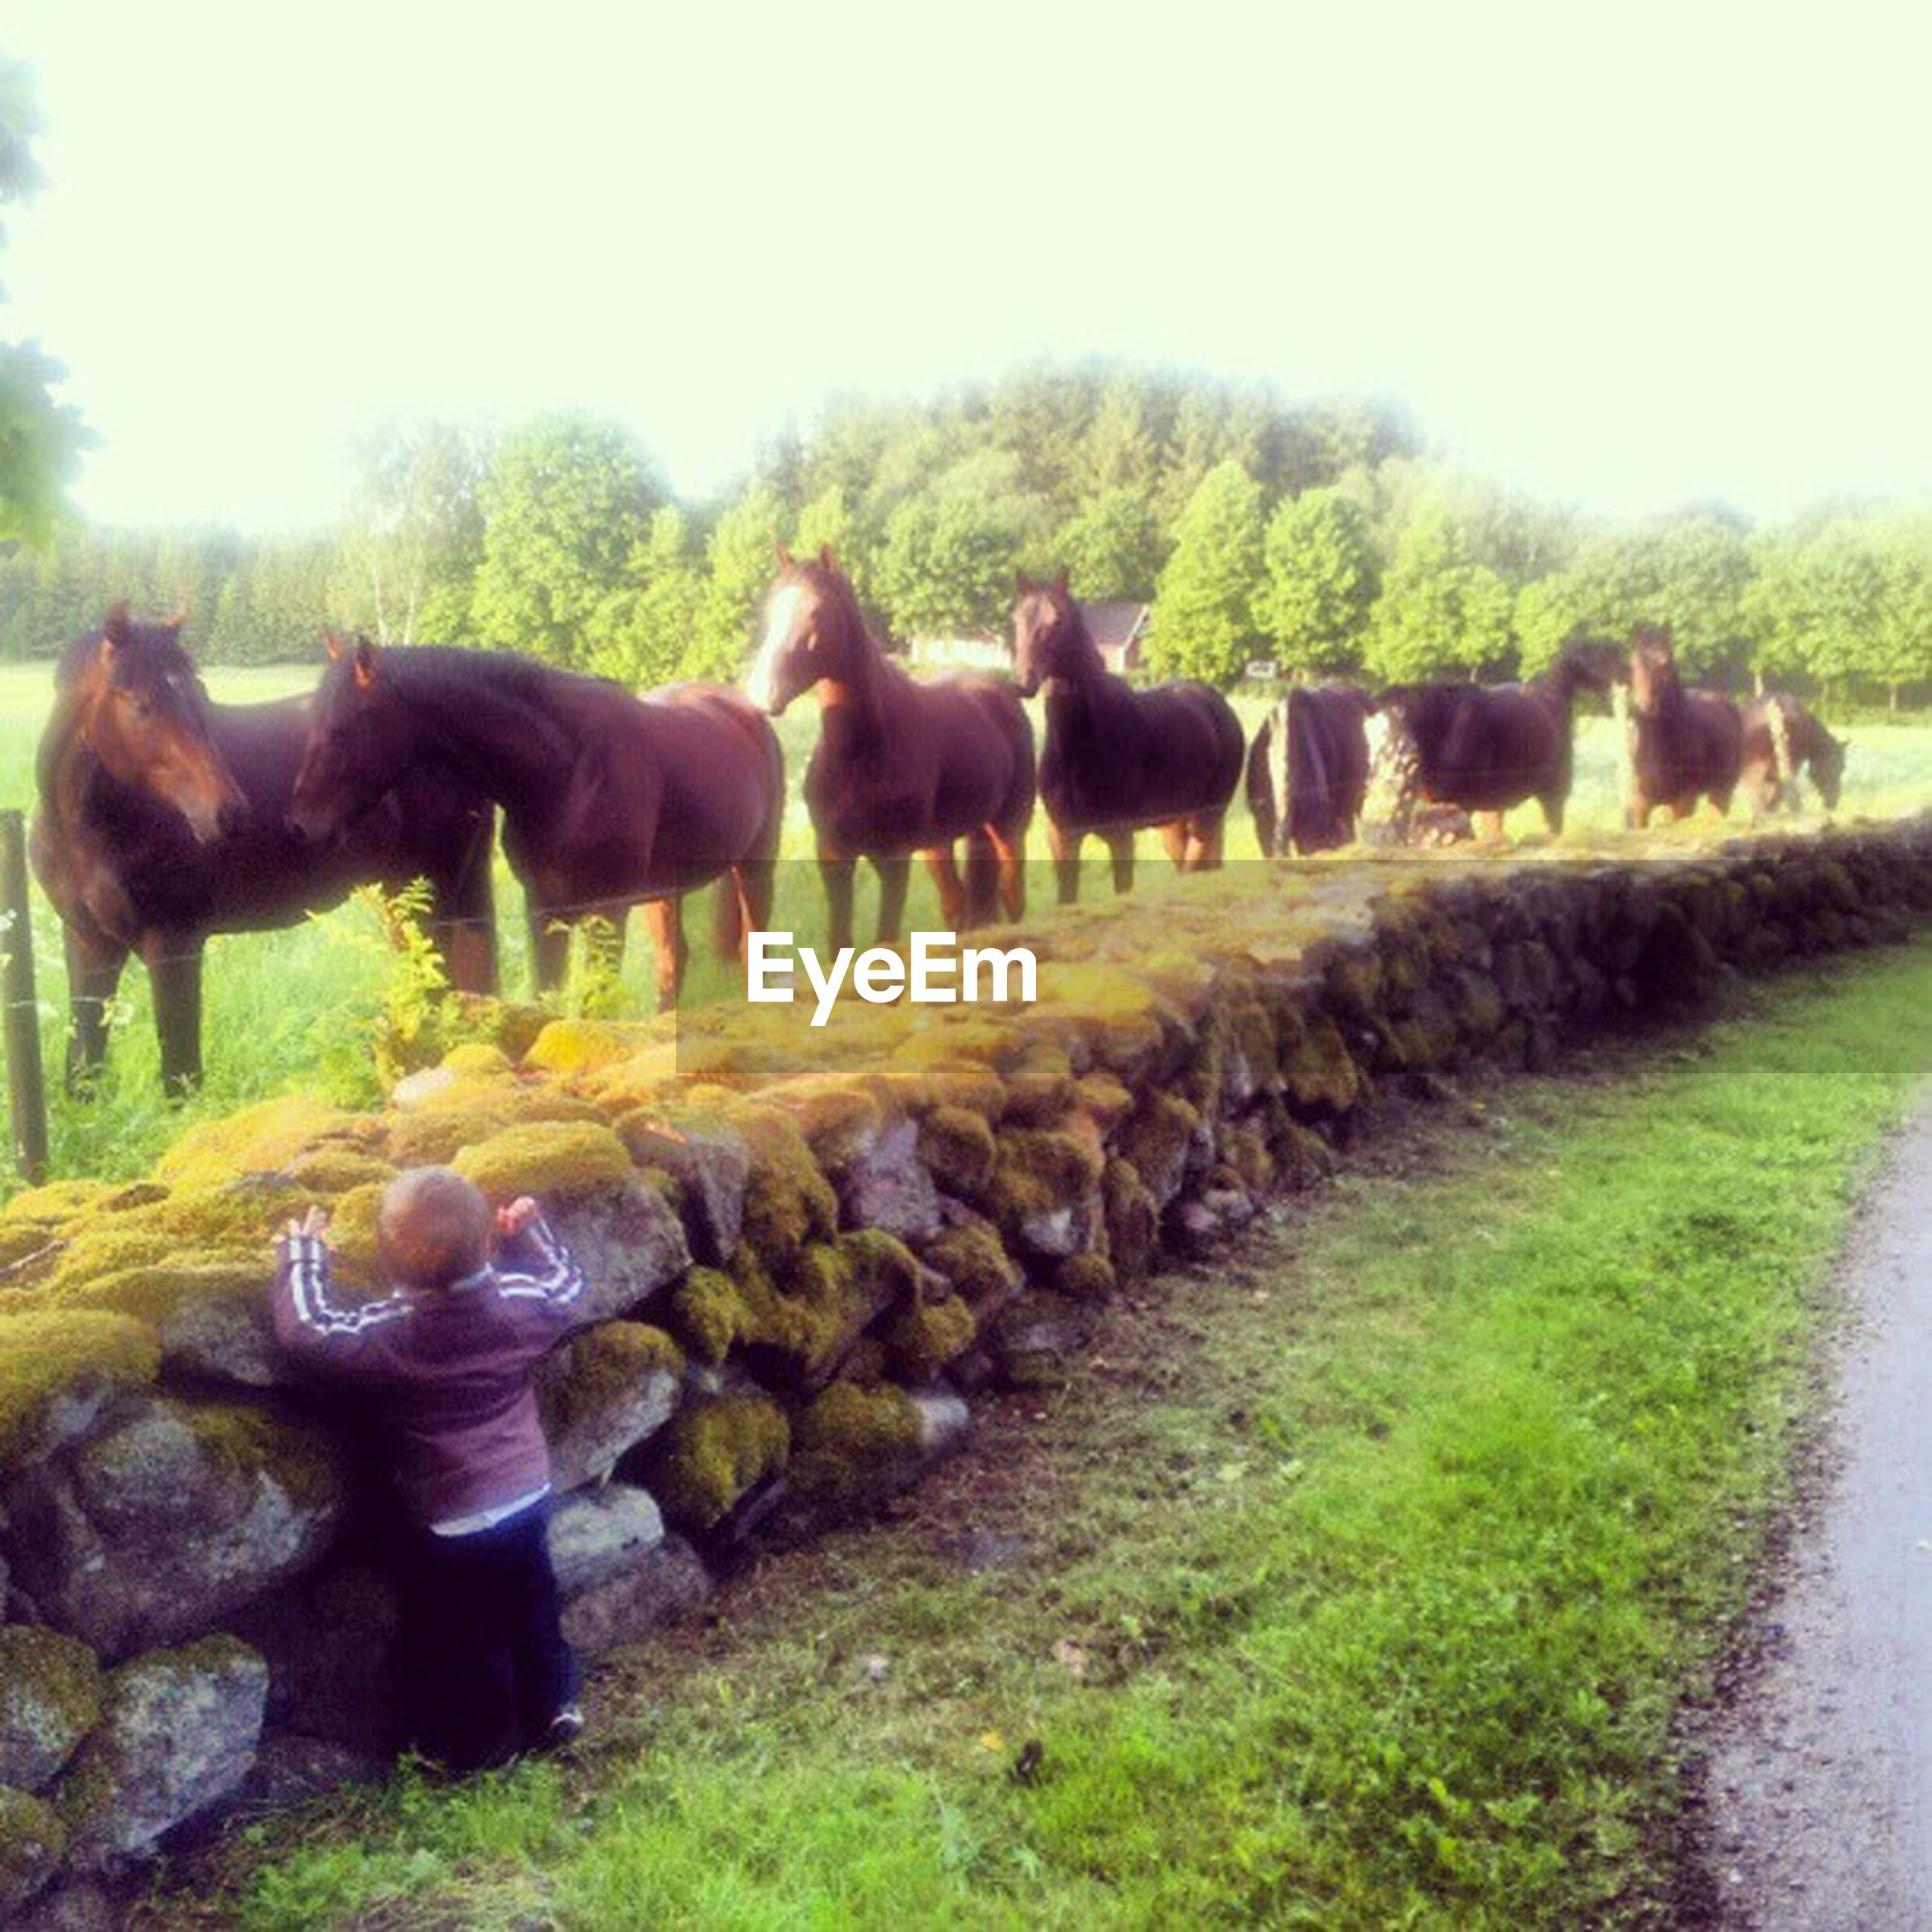 domestic animals, animal themes, mammal, livestock, grass, field, horse, two animals, cow, herbivorous, three animals, clear sky, standing, grazing, full length, pets, nature, grassy, day, green color